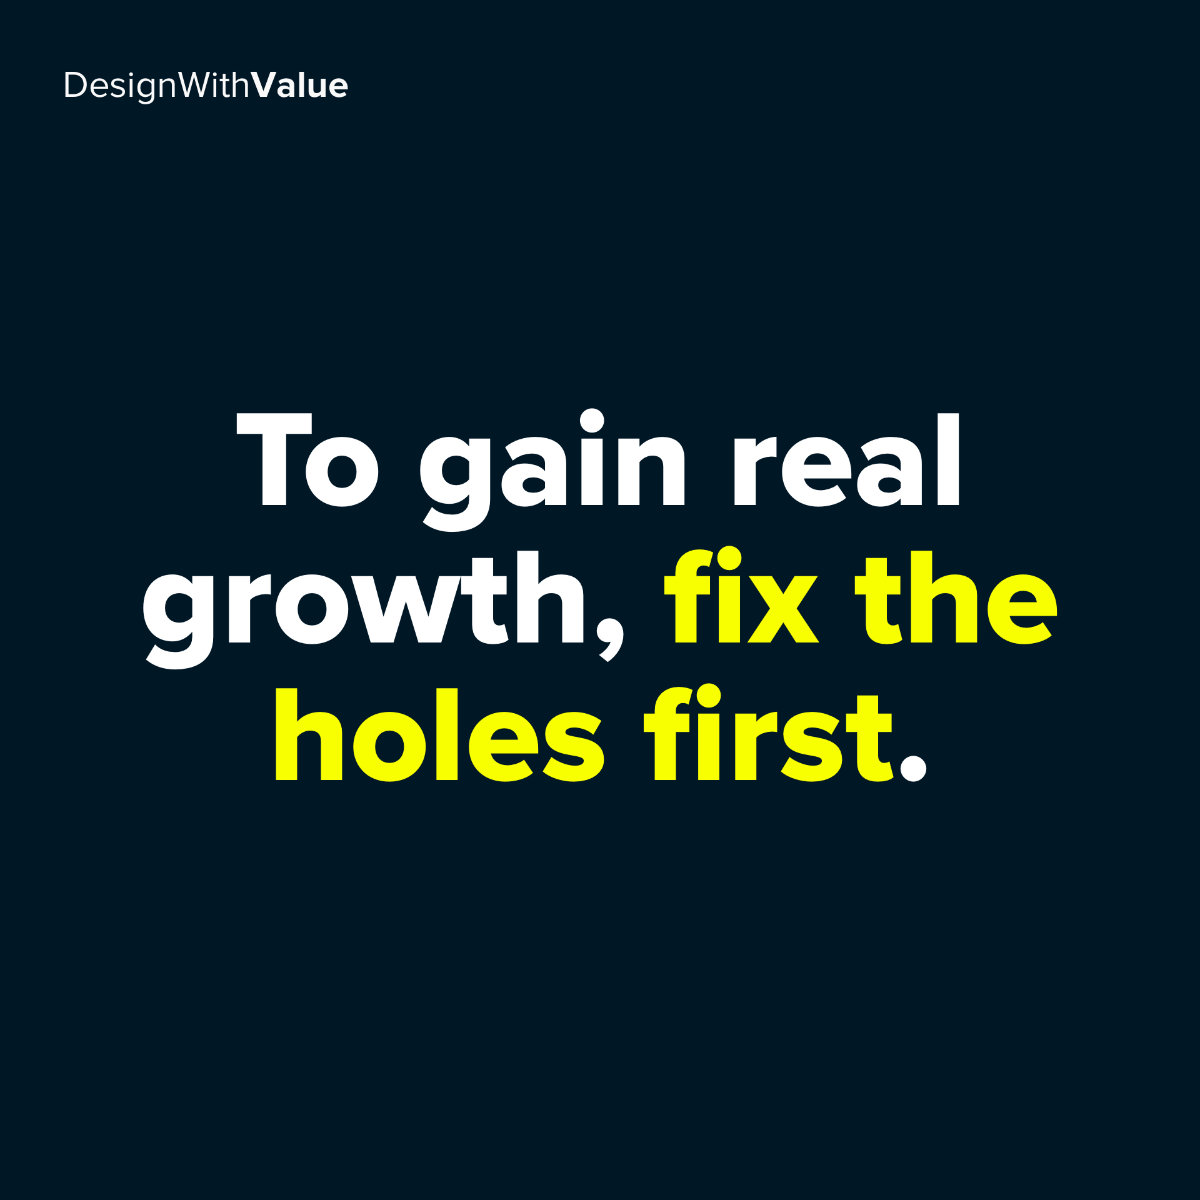 To gain real growth, fix the holes first